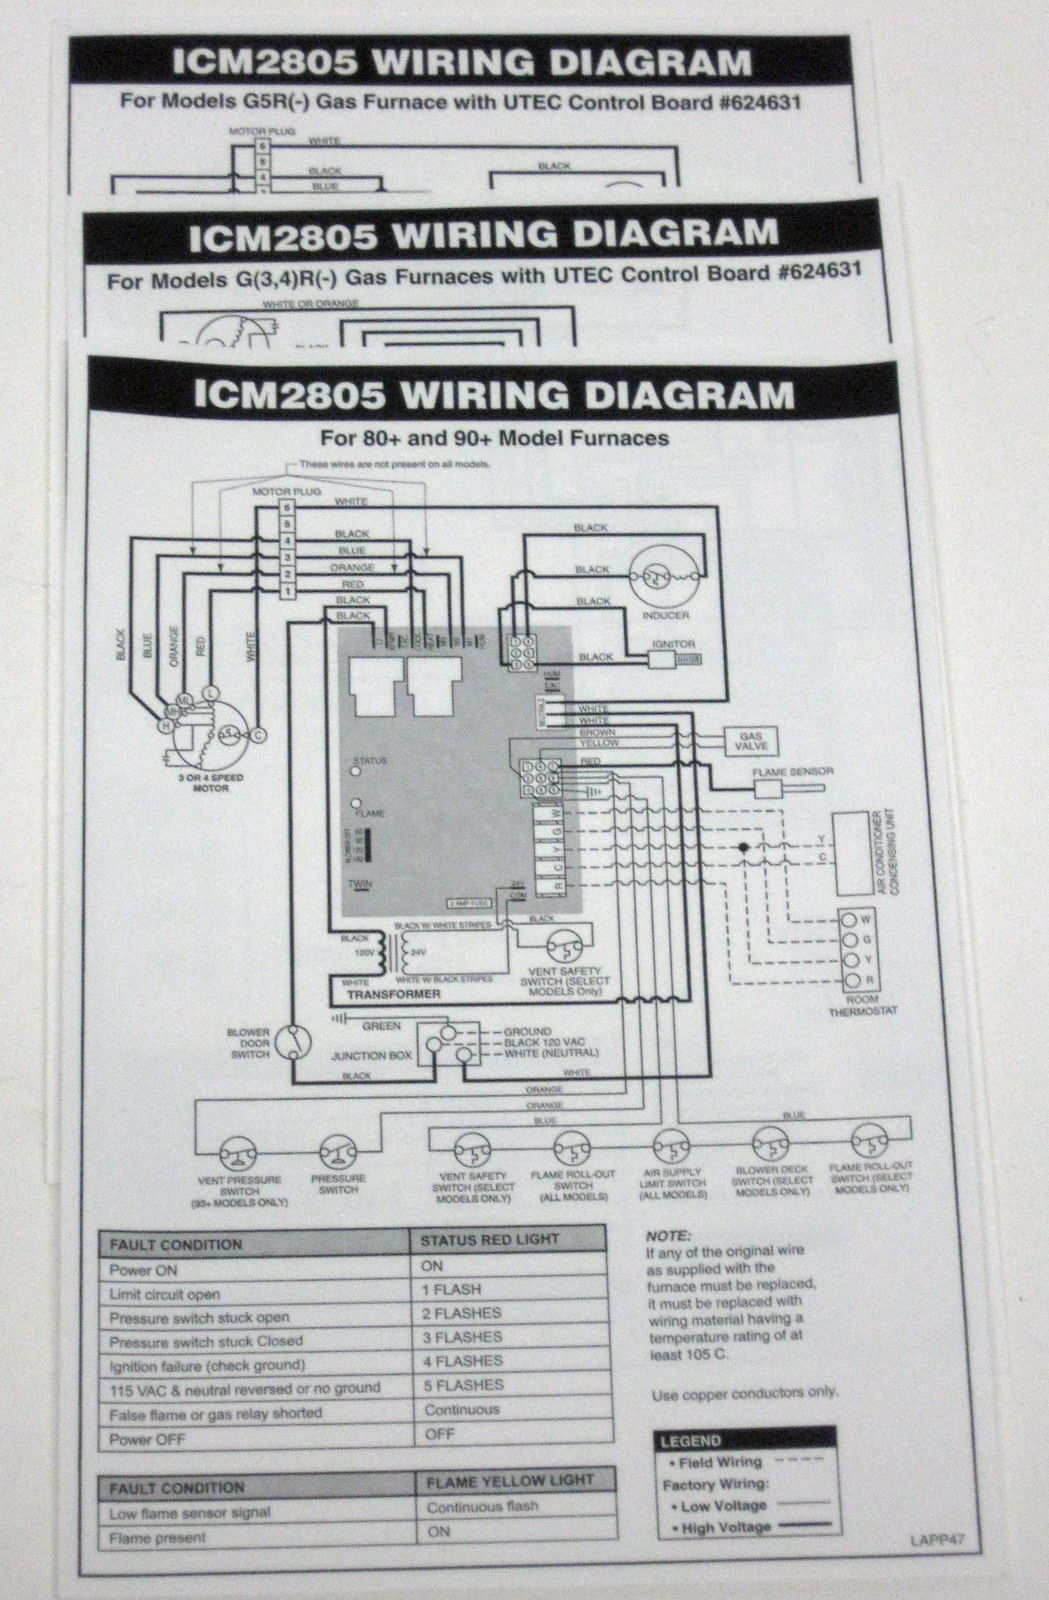 Nordyne Control Board Wiring Diagram Library Pump Defrost On Furnace Circuit Replacement Cost Icm Controls Icm2805 For 624631 Walmartcom